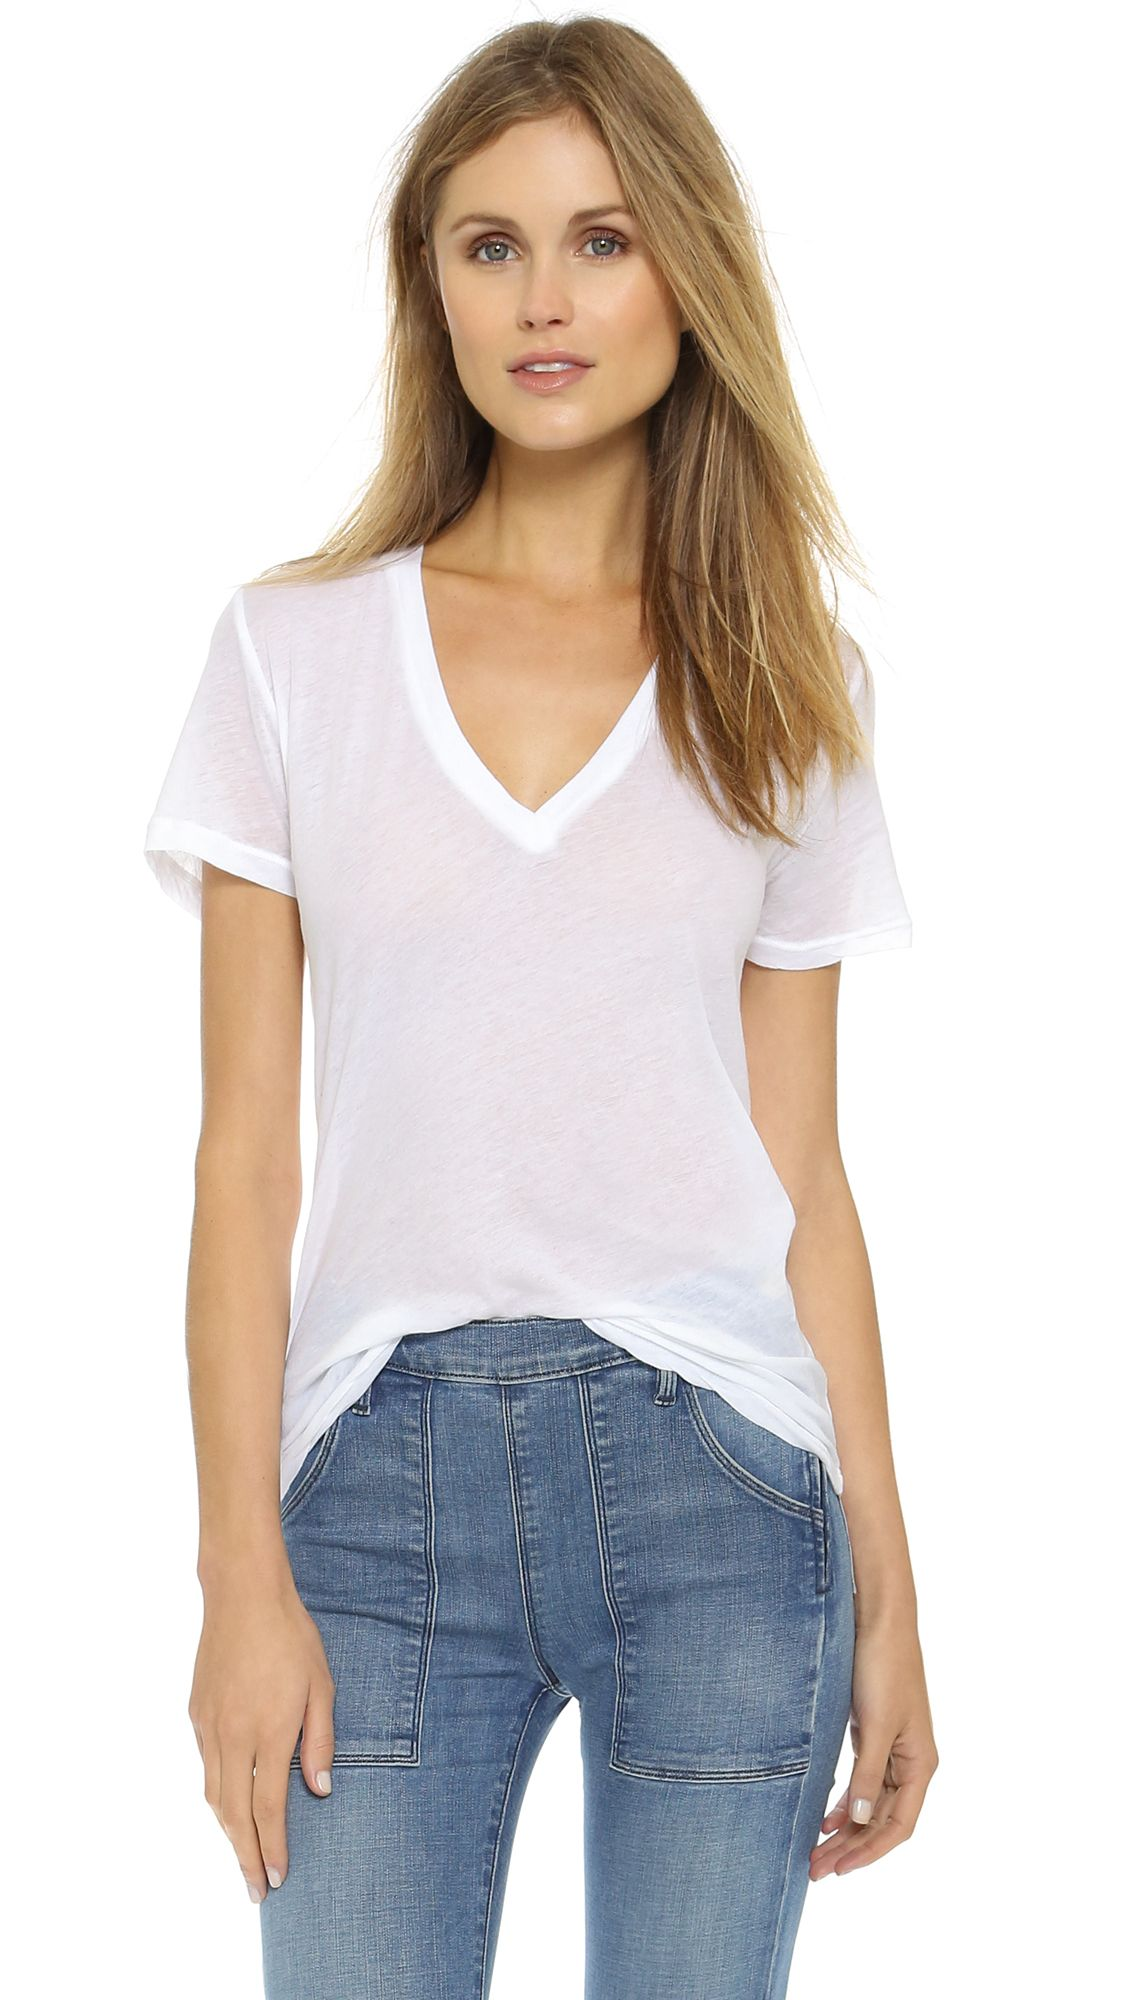 women's v neck tee with pocket